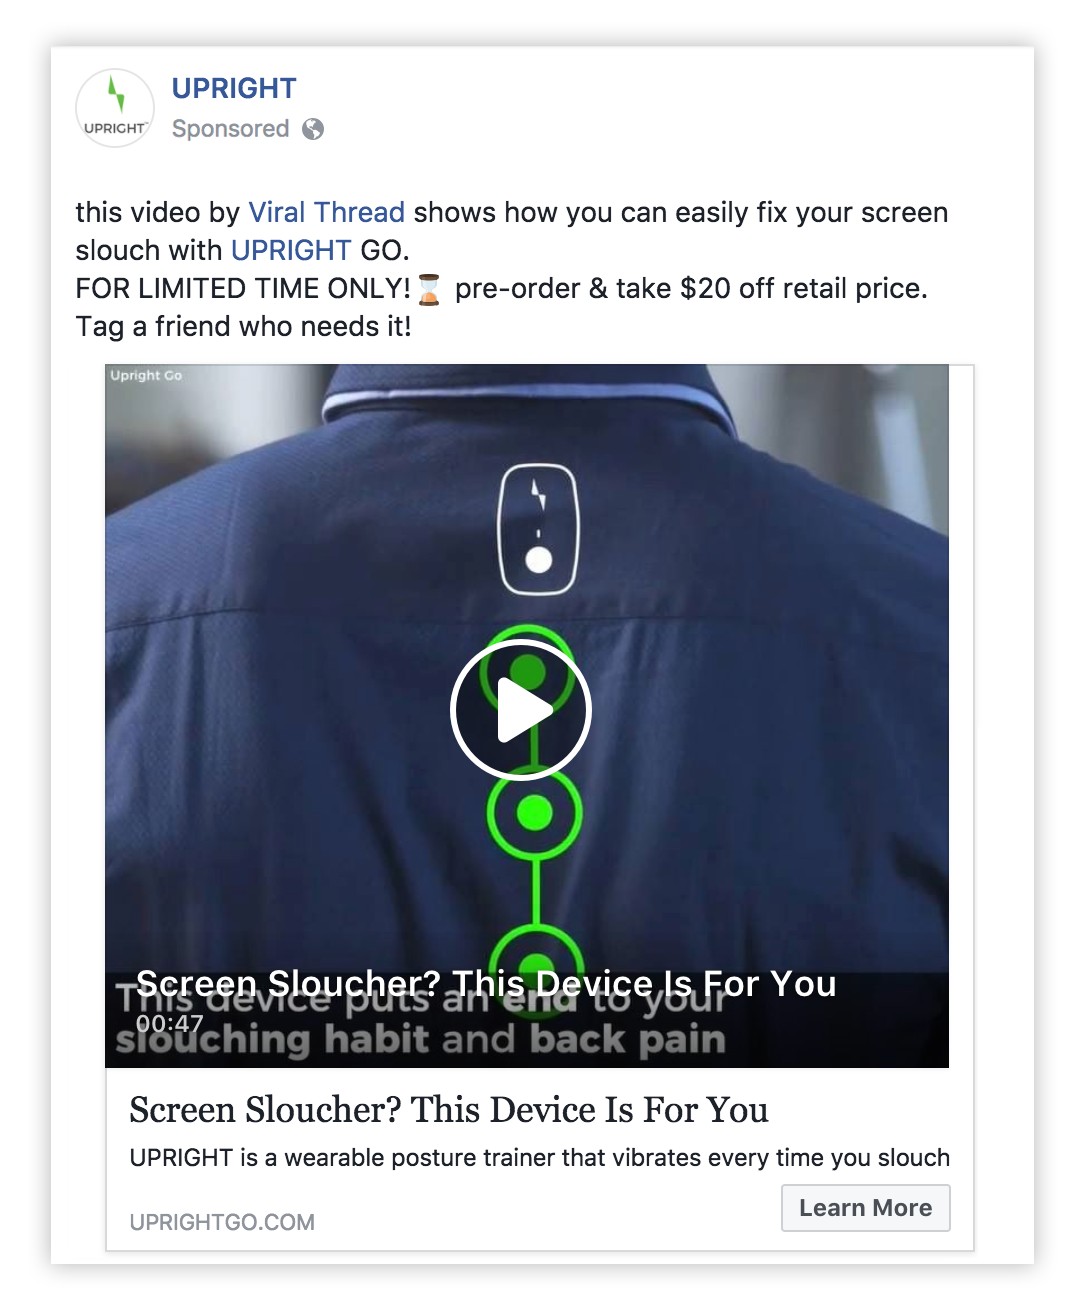 Upright facebook ad example